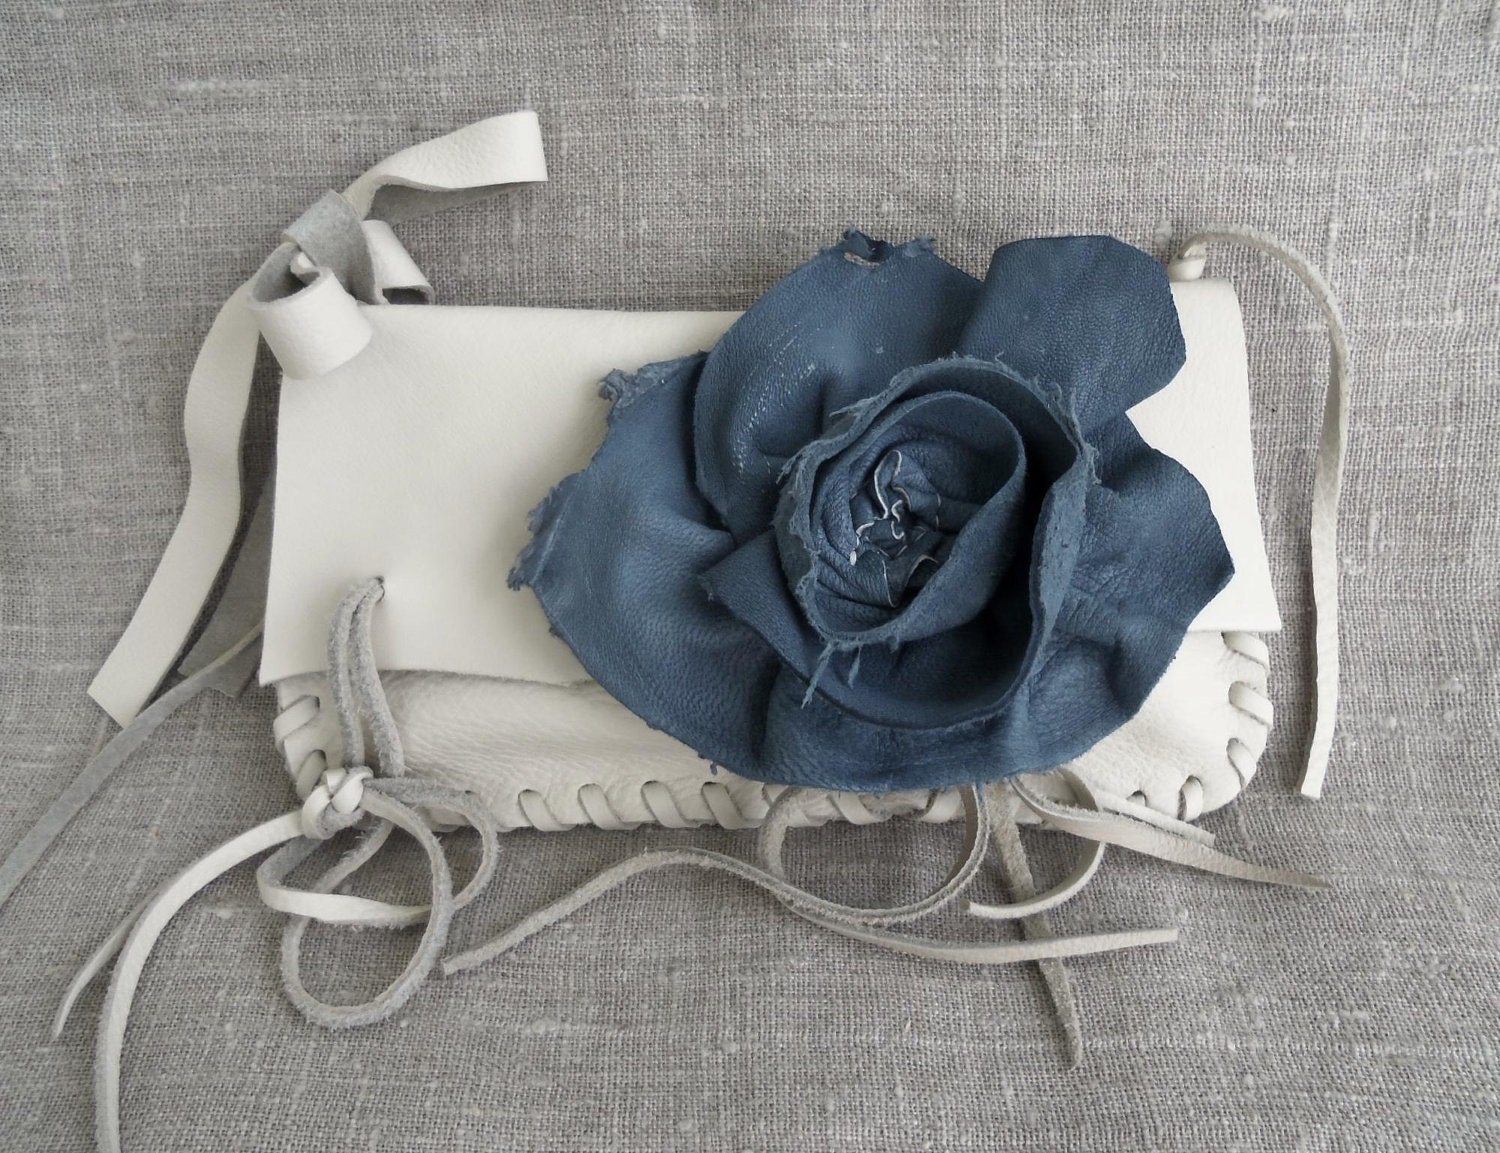 creamy white leather clutch or wristlet with denim blue rose flower by Tuscada. Ready to ship - tuscada